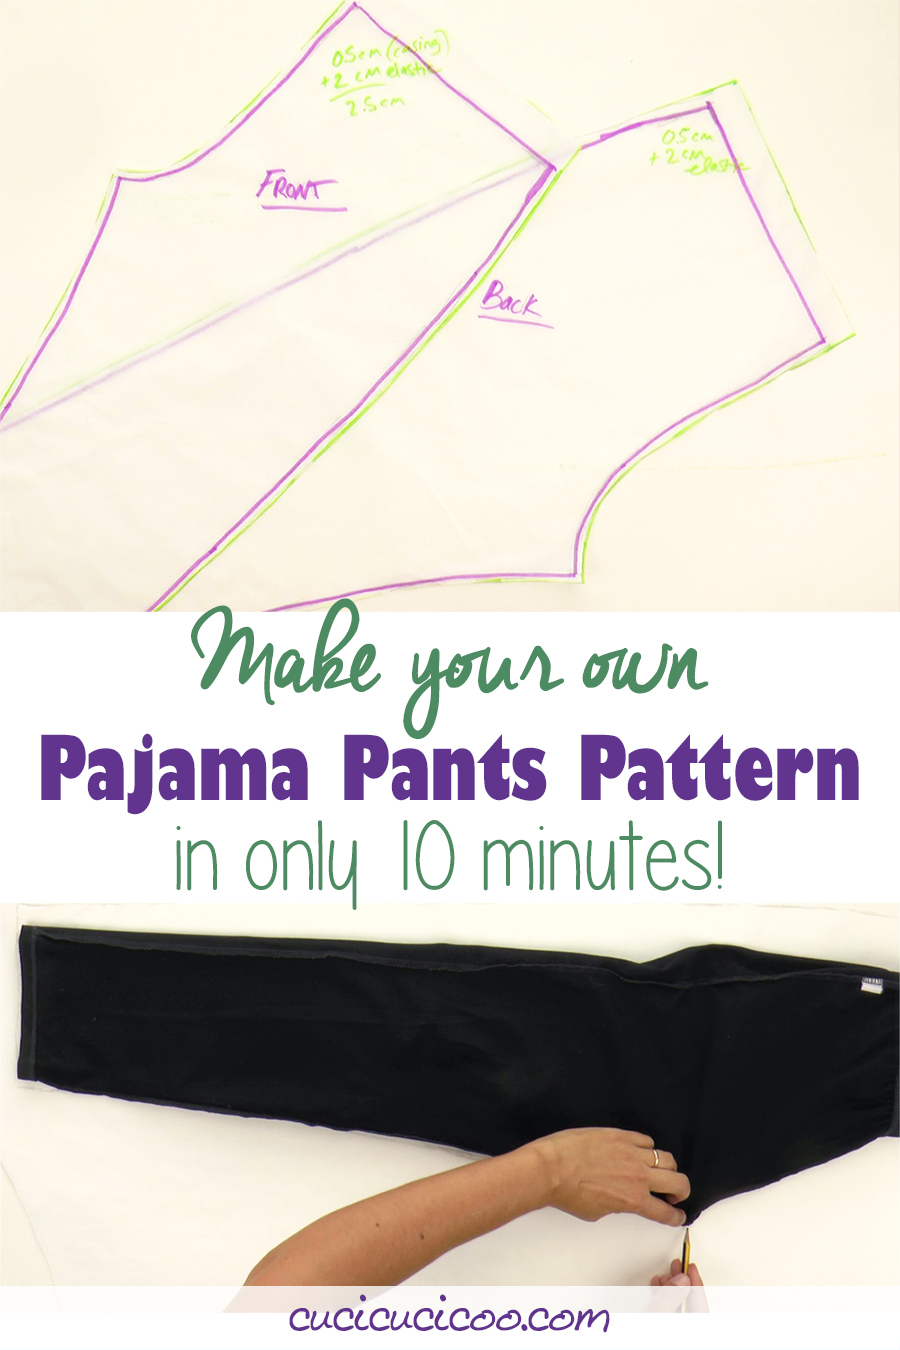 It's so easy to trace around a pair of pants that fit you to get a free pajama pants sewing pattern! This tutorial gives tips and tricks for making it easy! #freesewing #sewingpatterns